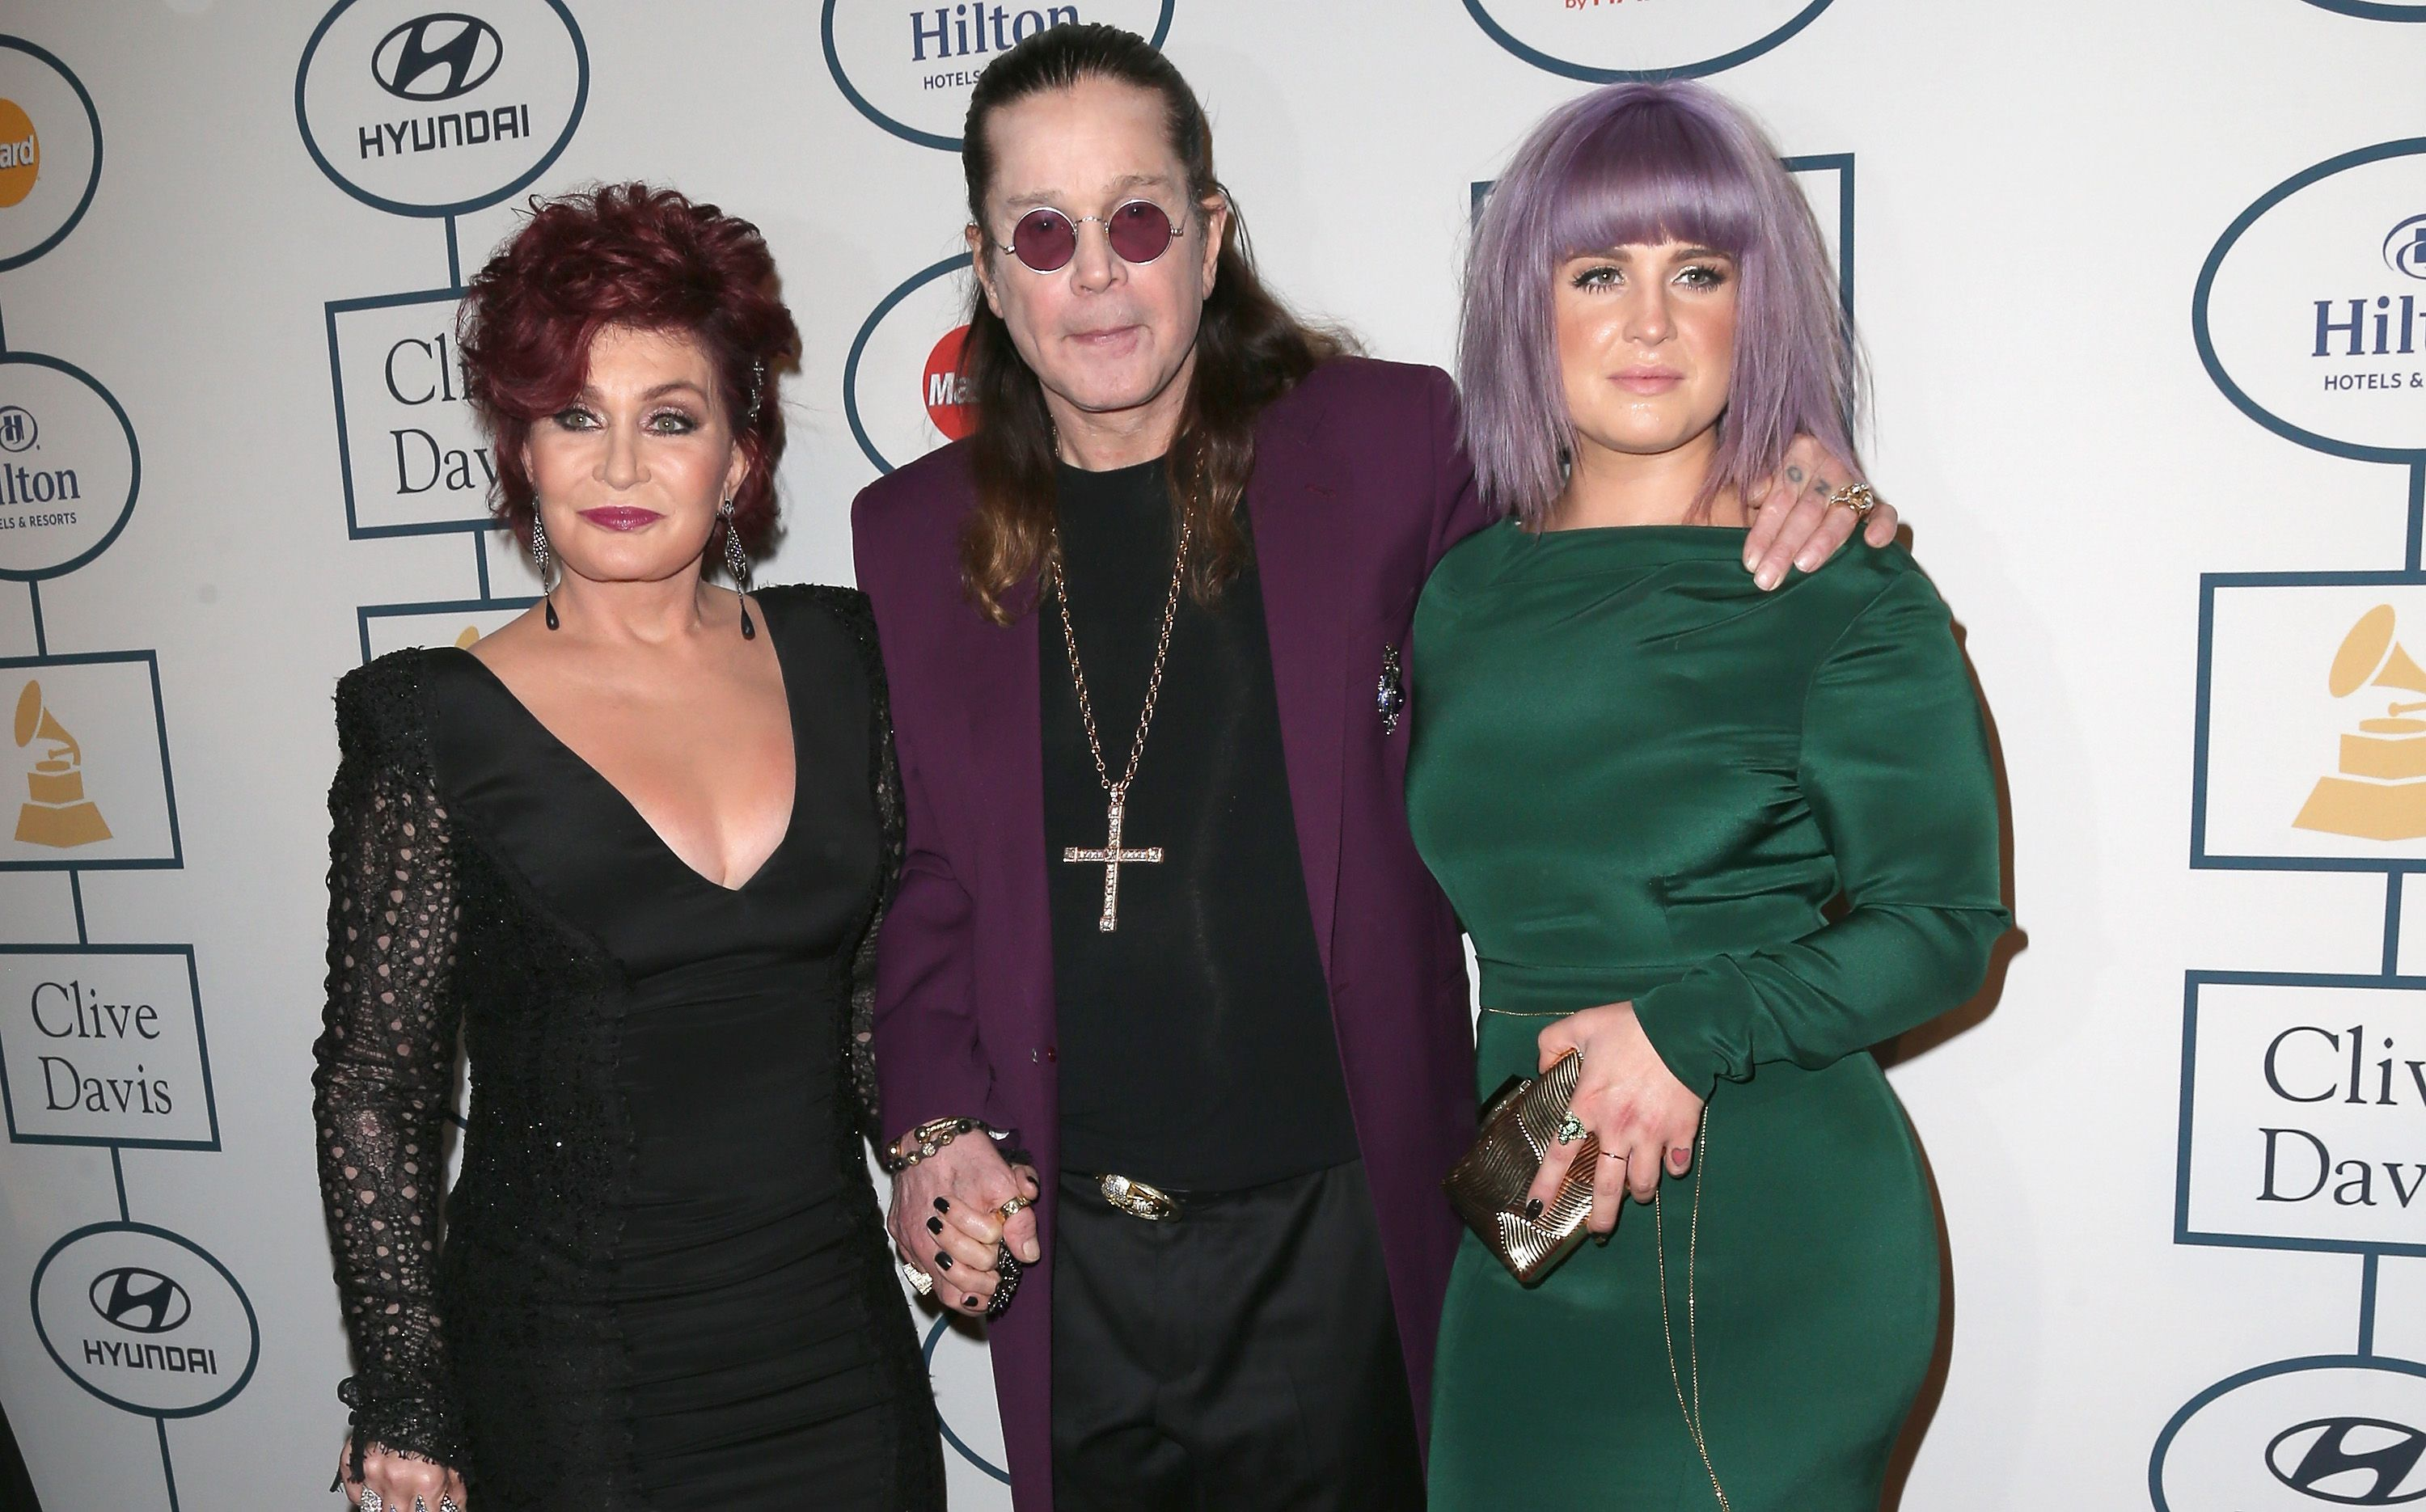 Sharon Osbourne, Kelly Osbourne, and Ozzy Osbourne during the 56th annual GRAMMY Awards Pre-GRAMMY Gala and Salute to Industry Icons honoring Lucian Grainge at The Beverly Hilton on January 25, 2014 in Beverly Hills, California. | Source: Getty Images